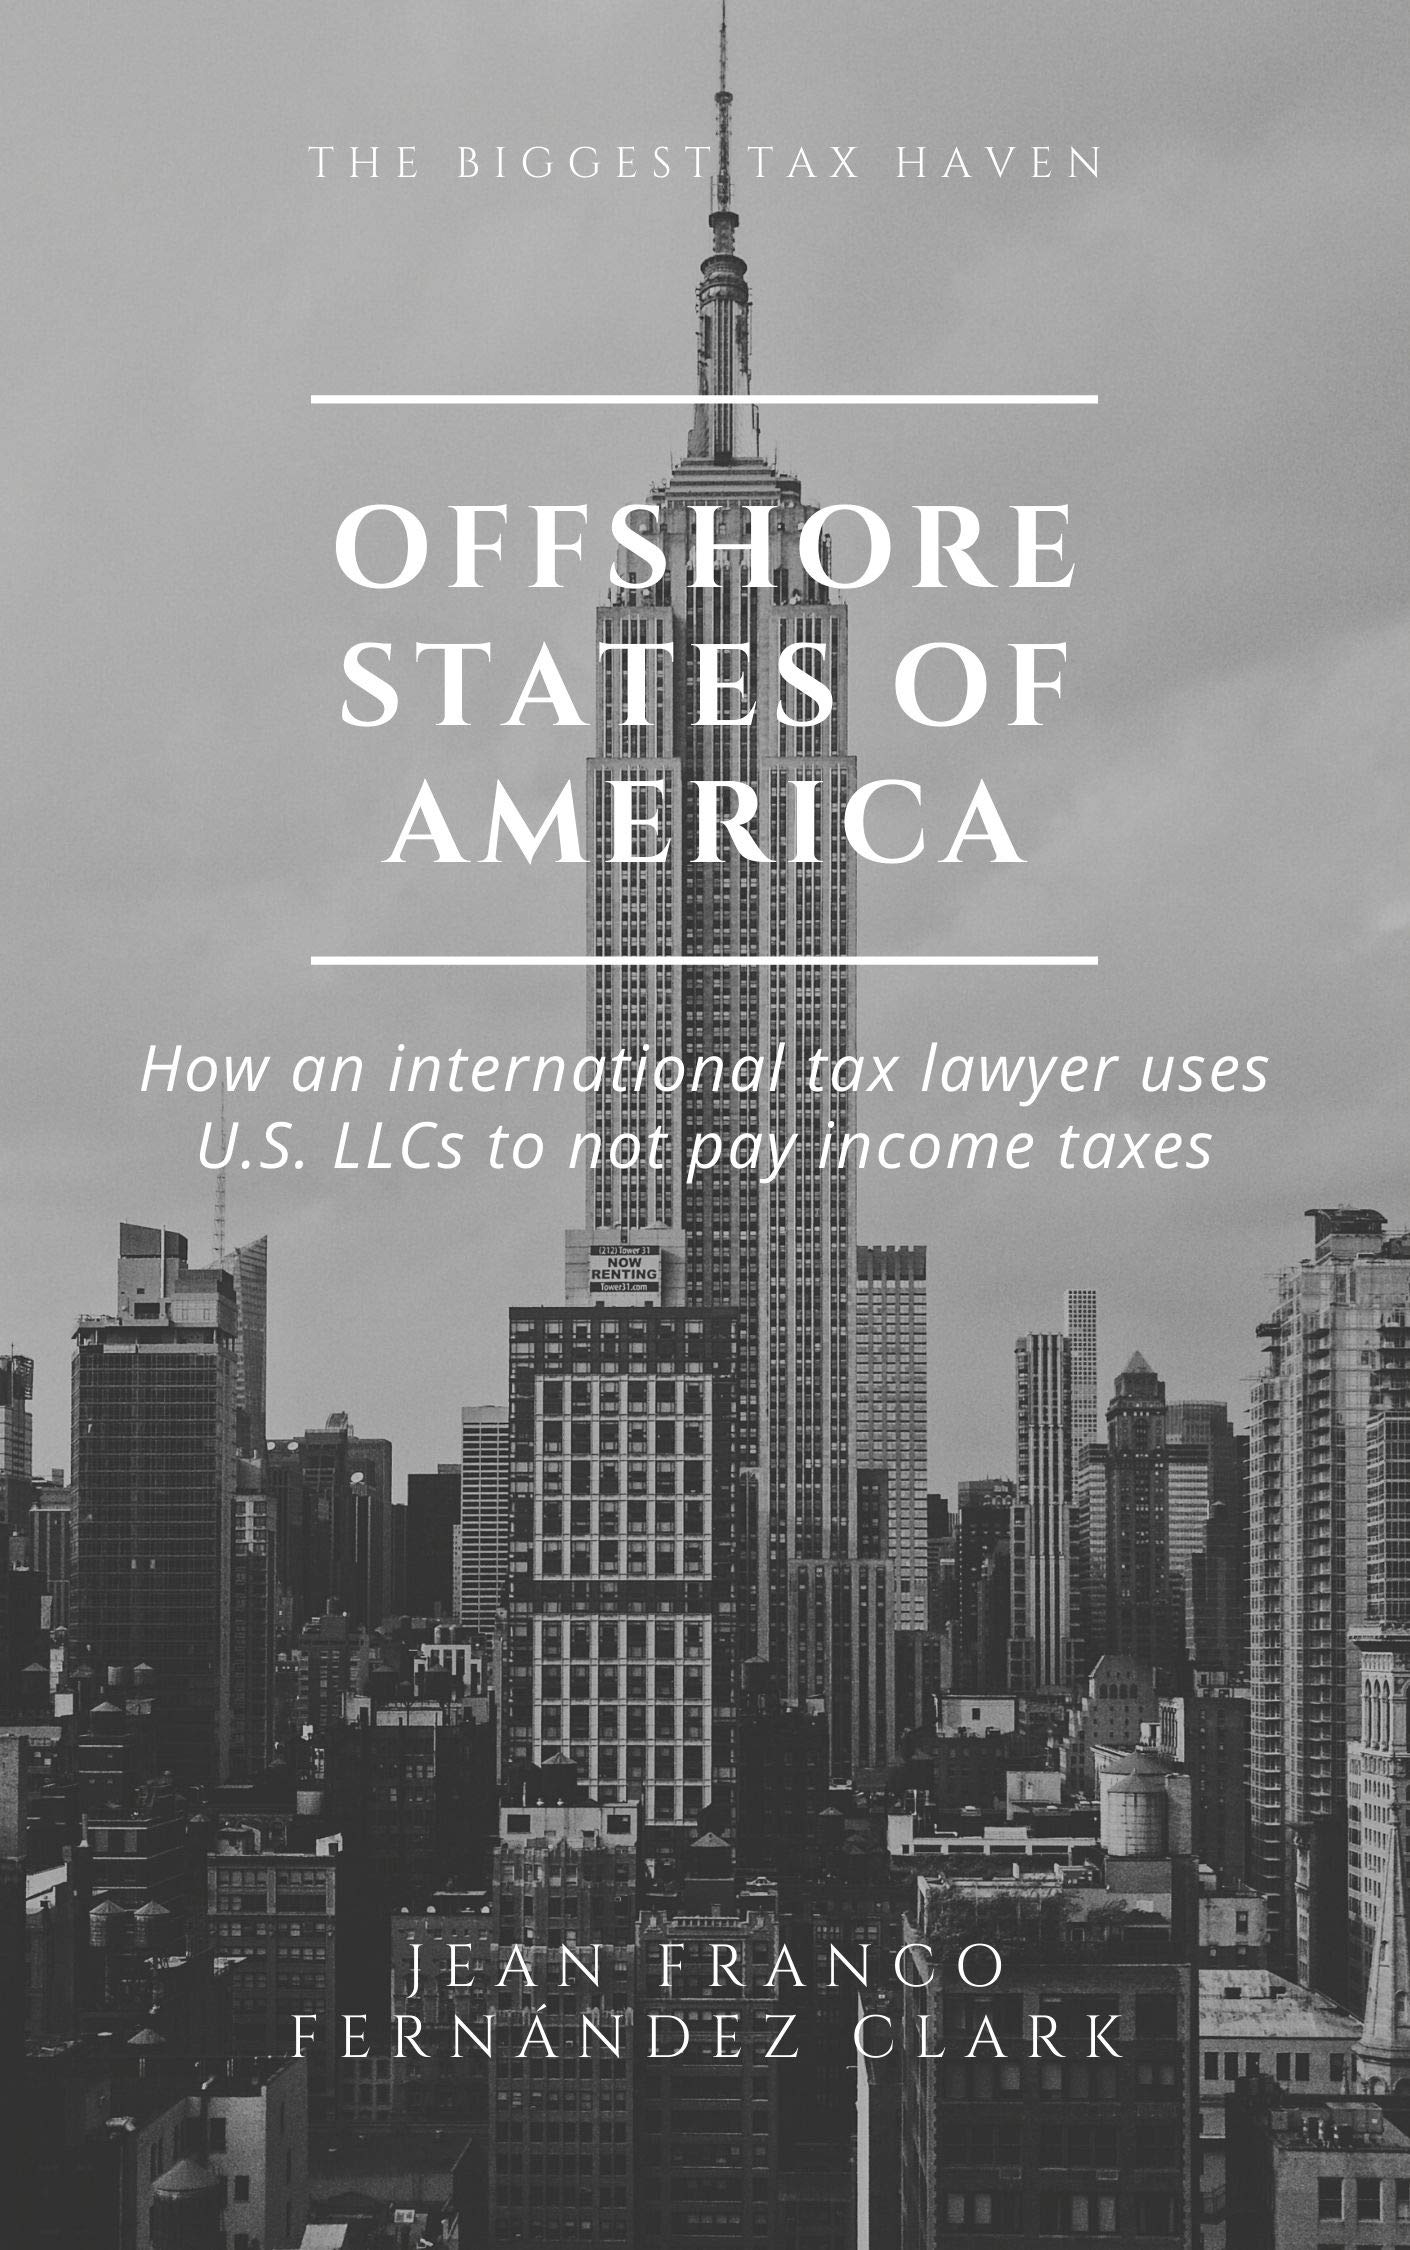 Offshore States of America: How an international tax lawyer uses U.S. LLCs to not pay income tax